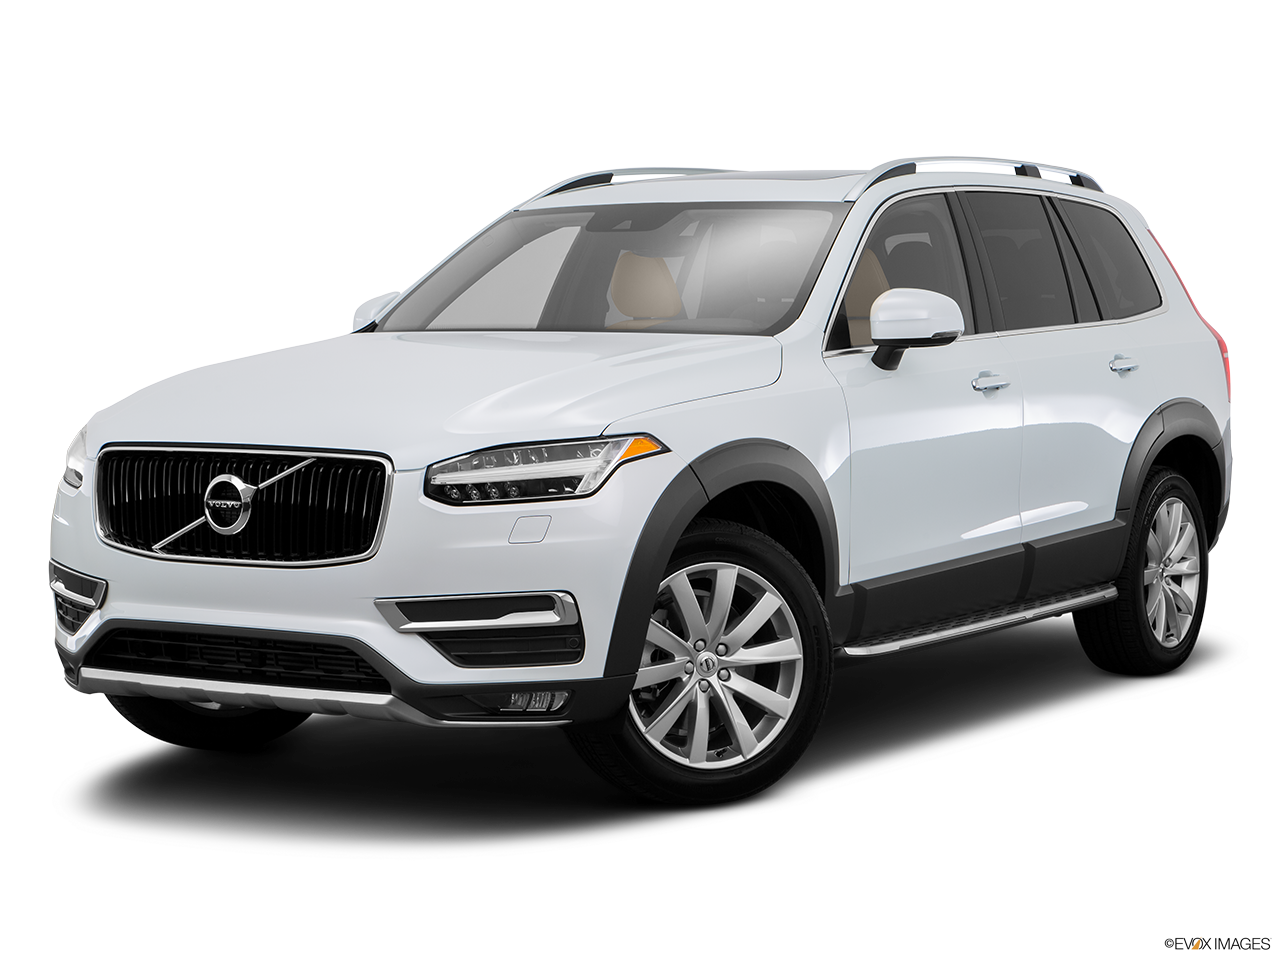 Test Drive A 2016 Volvo XC90 at Galpin Volvo in Los Angeles